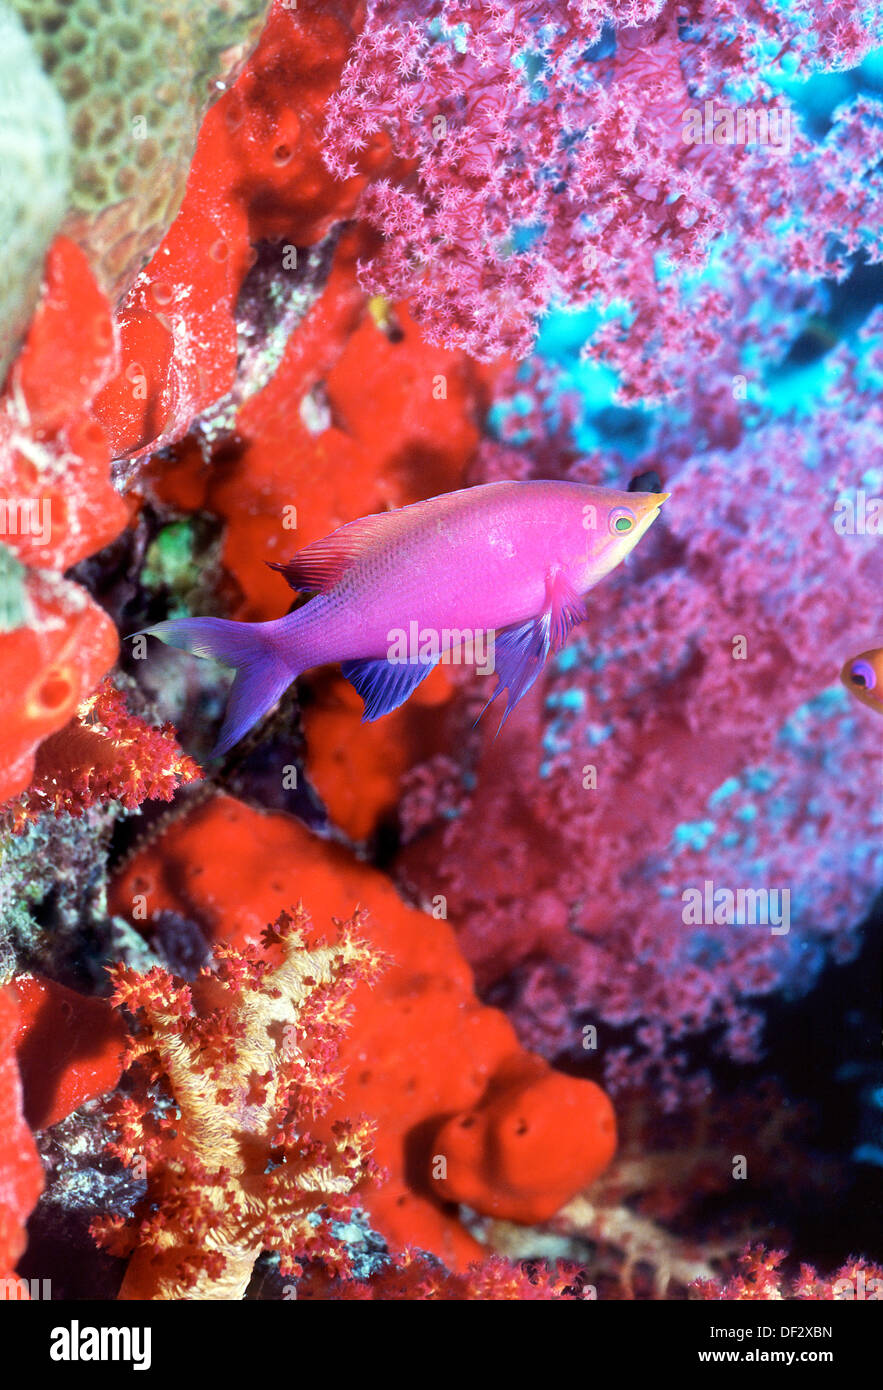 Purple Queen fish (Pseudanthias tuka) with red sponges and soft coral. Malaysia Stock Photo